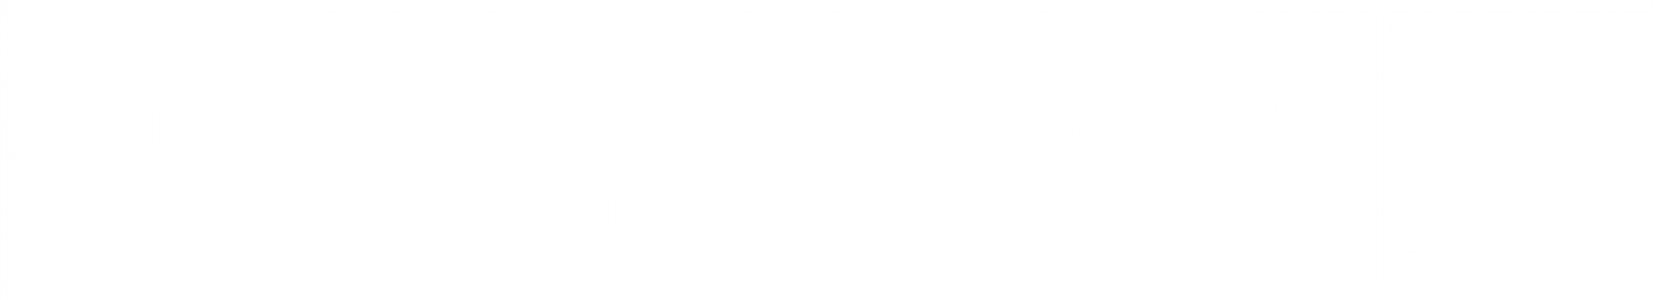 Pittenger and Anderson, Inc.